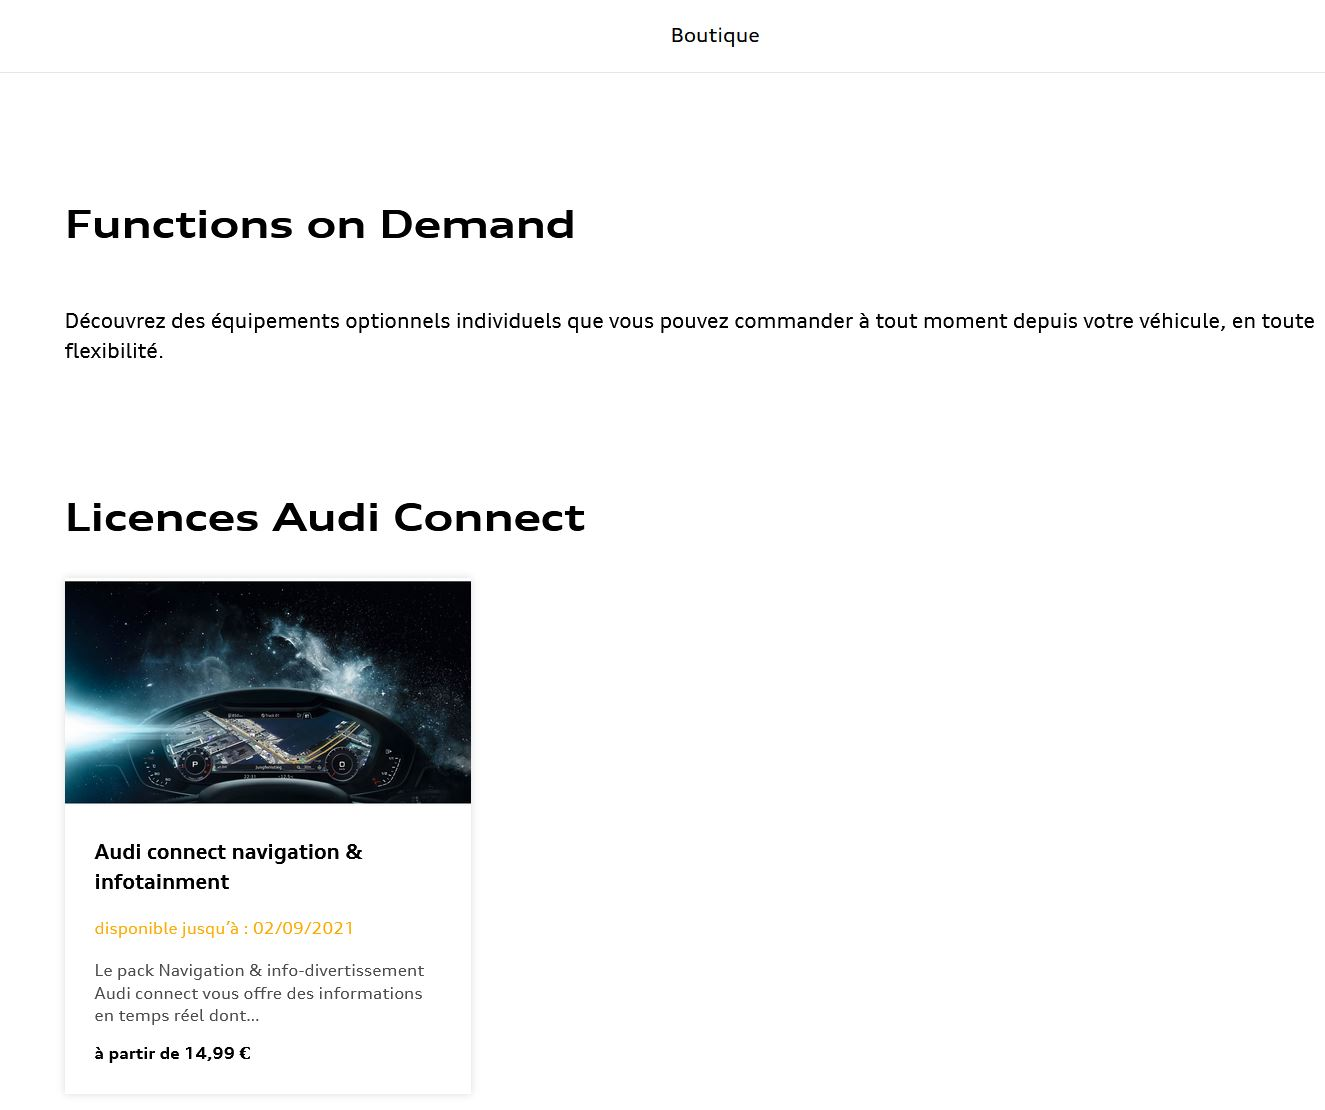 Capture-Functions-on-Demand---Licence-Audi-Connect-Mozilla.jpg